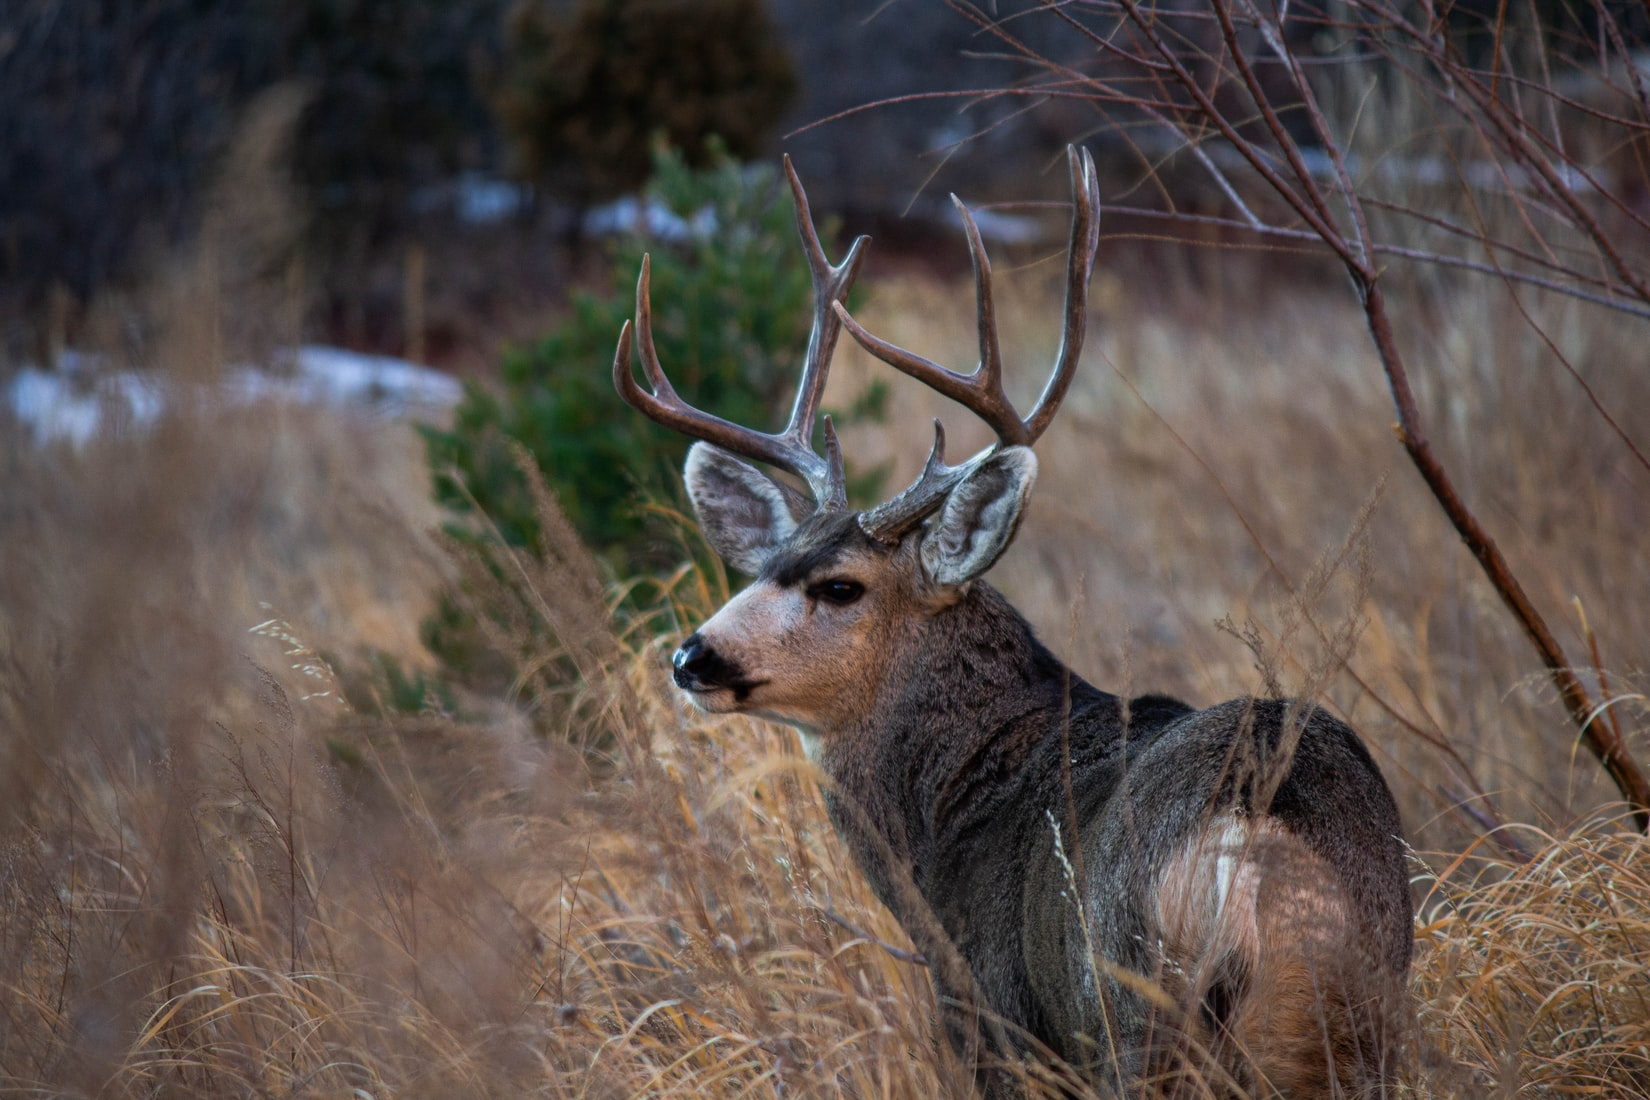 Culling of Bucks Doesn't Lead To Bigger Bucks, Research Says